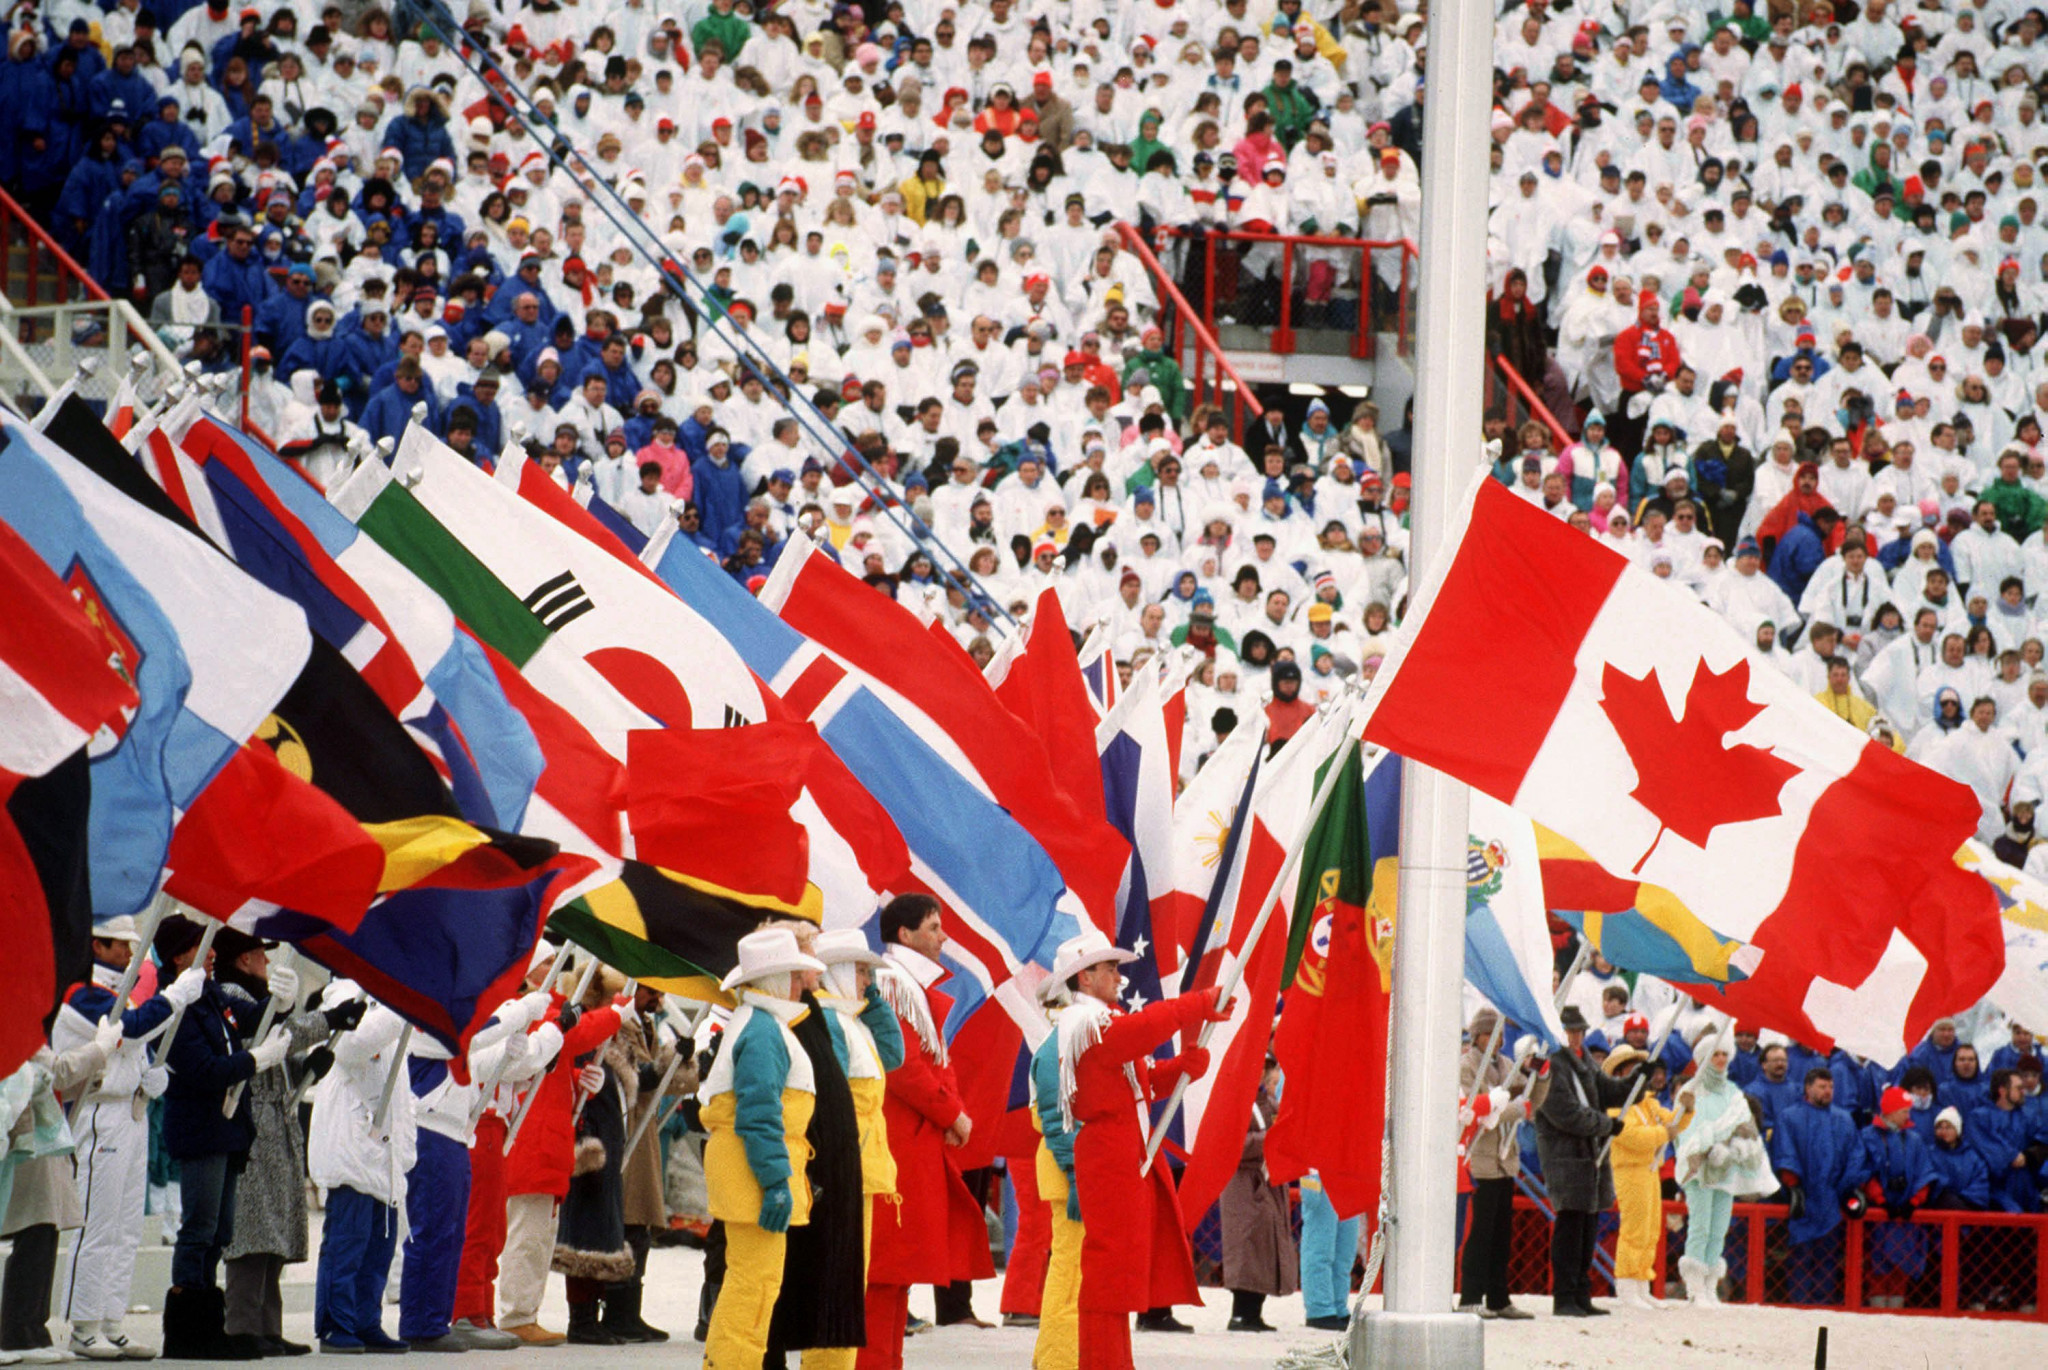 Calgary previously hosted the Winter Olympics in 1988 ©Getty Images